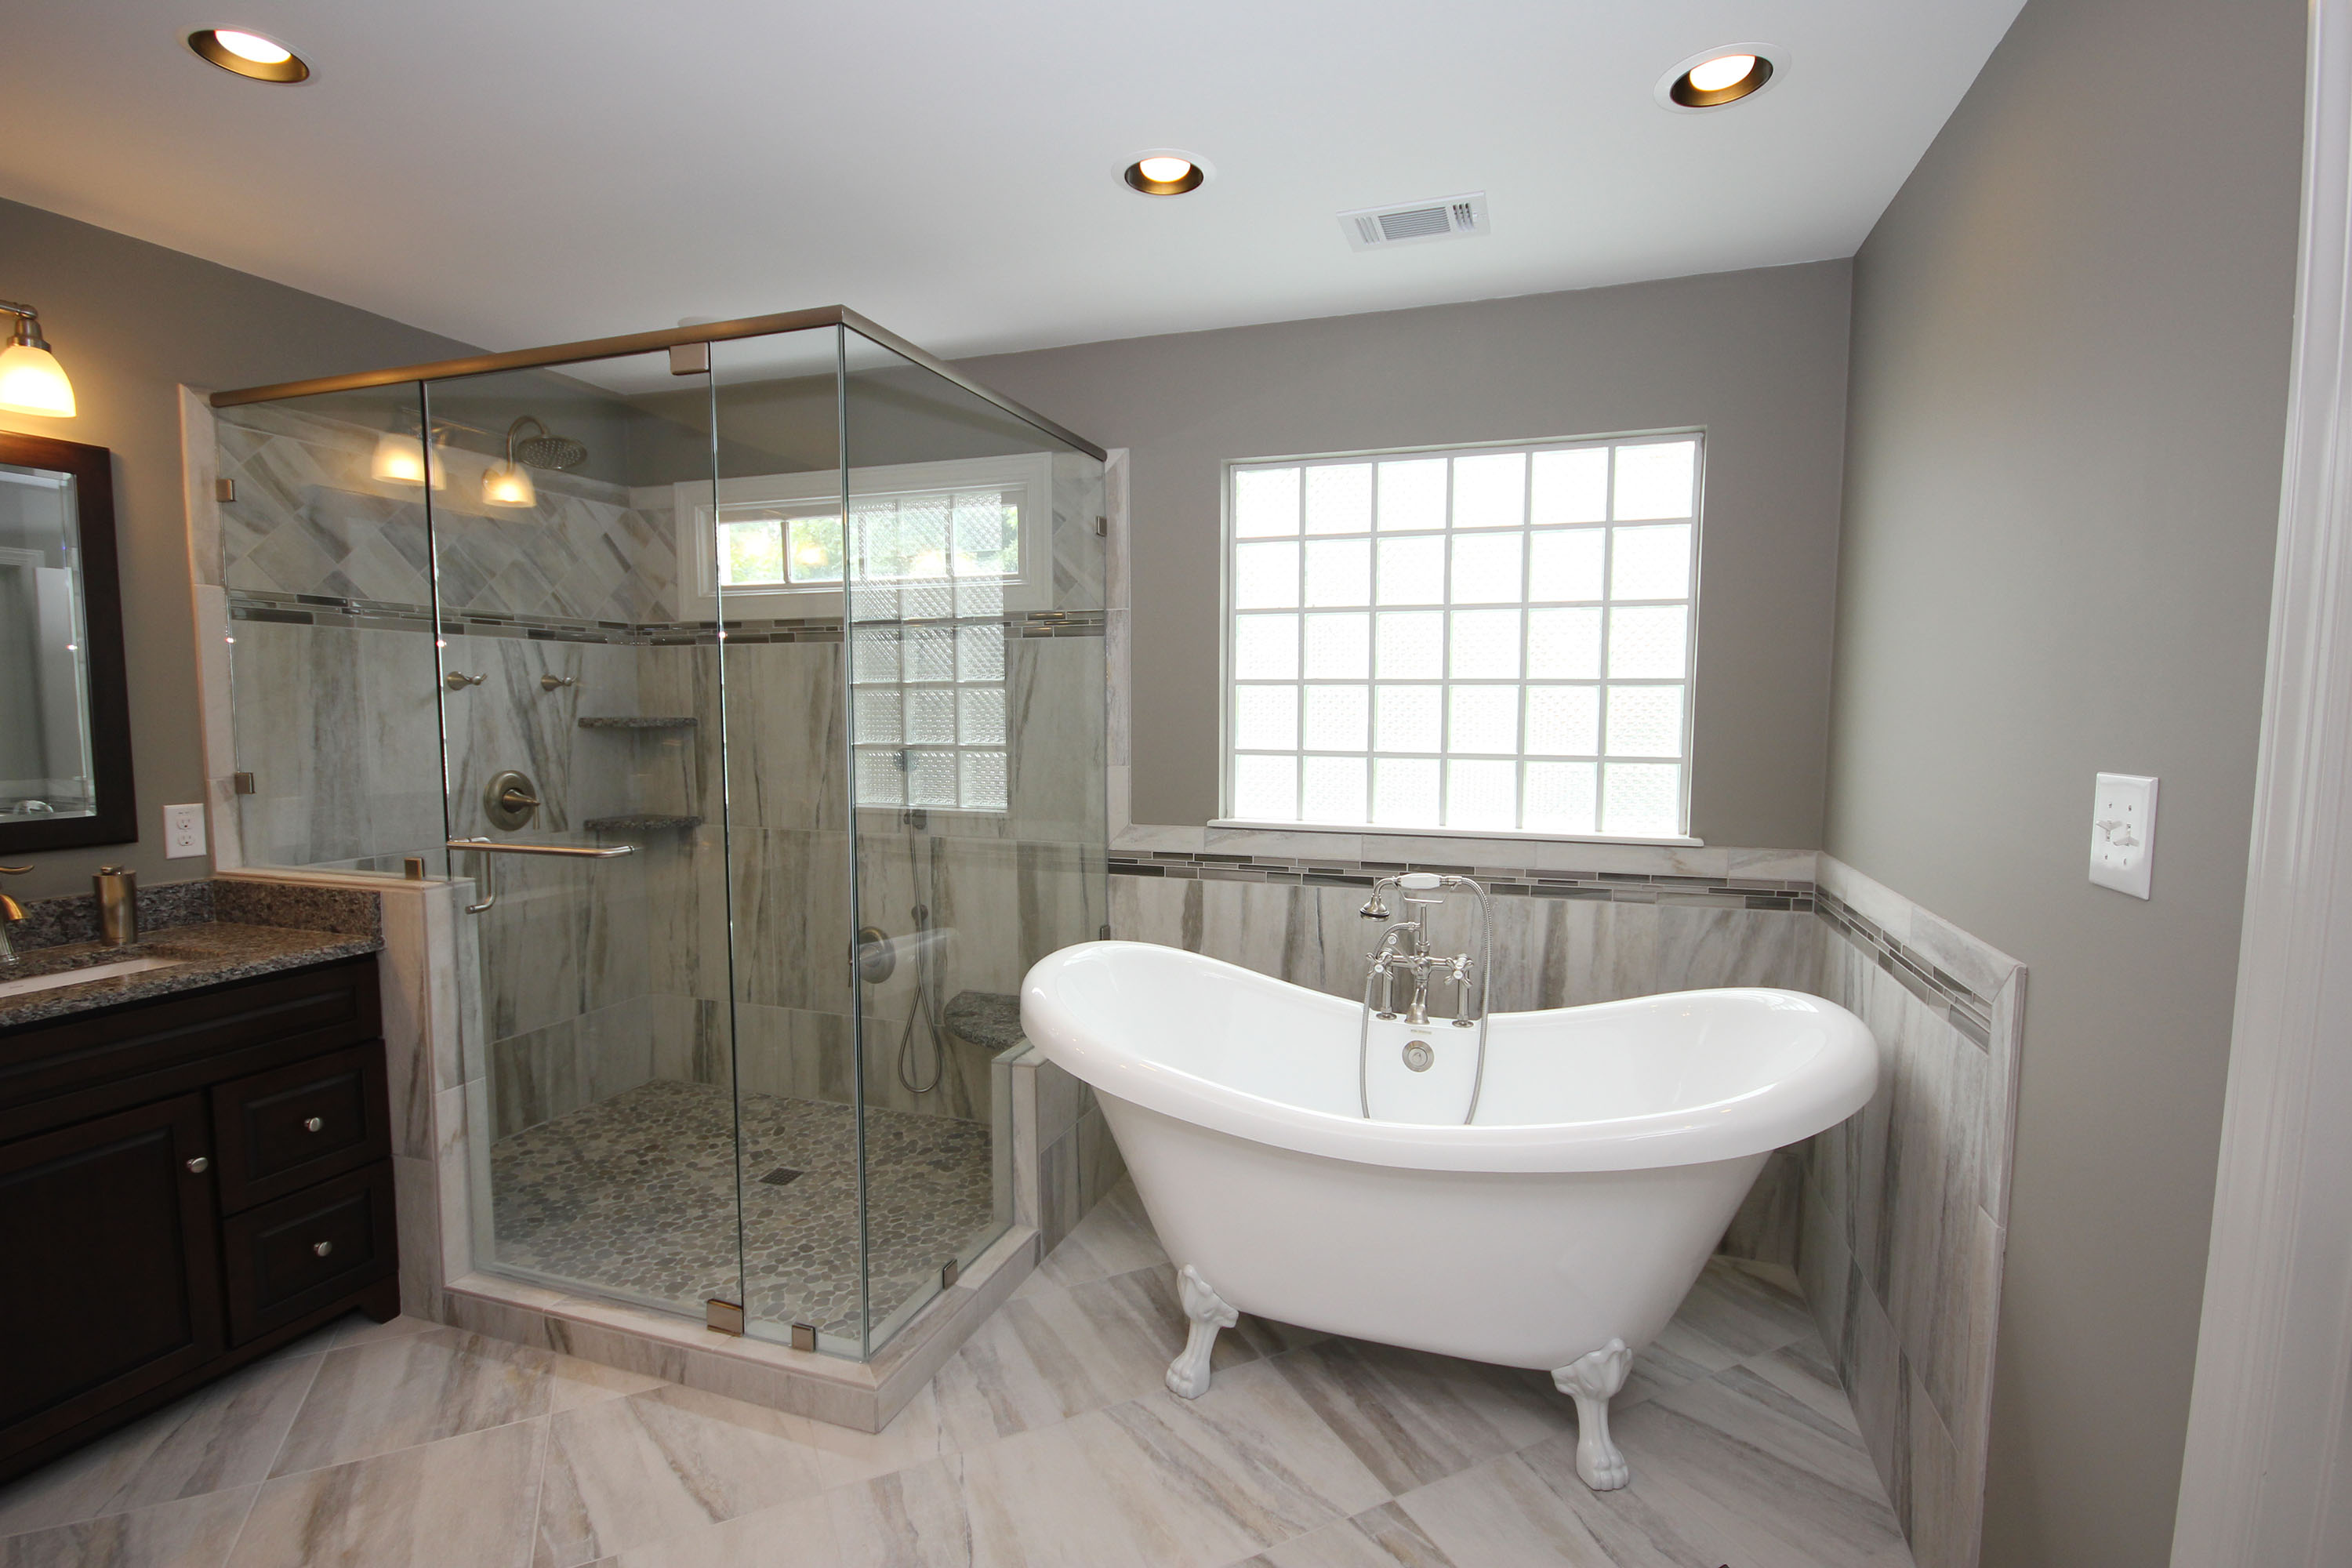 Planning A Bathroom Remodel Consider The Layout First: Freestanding Bathtubs By Cary Bathroom Remodeling